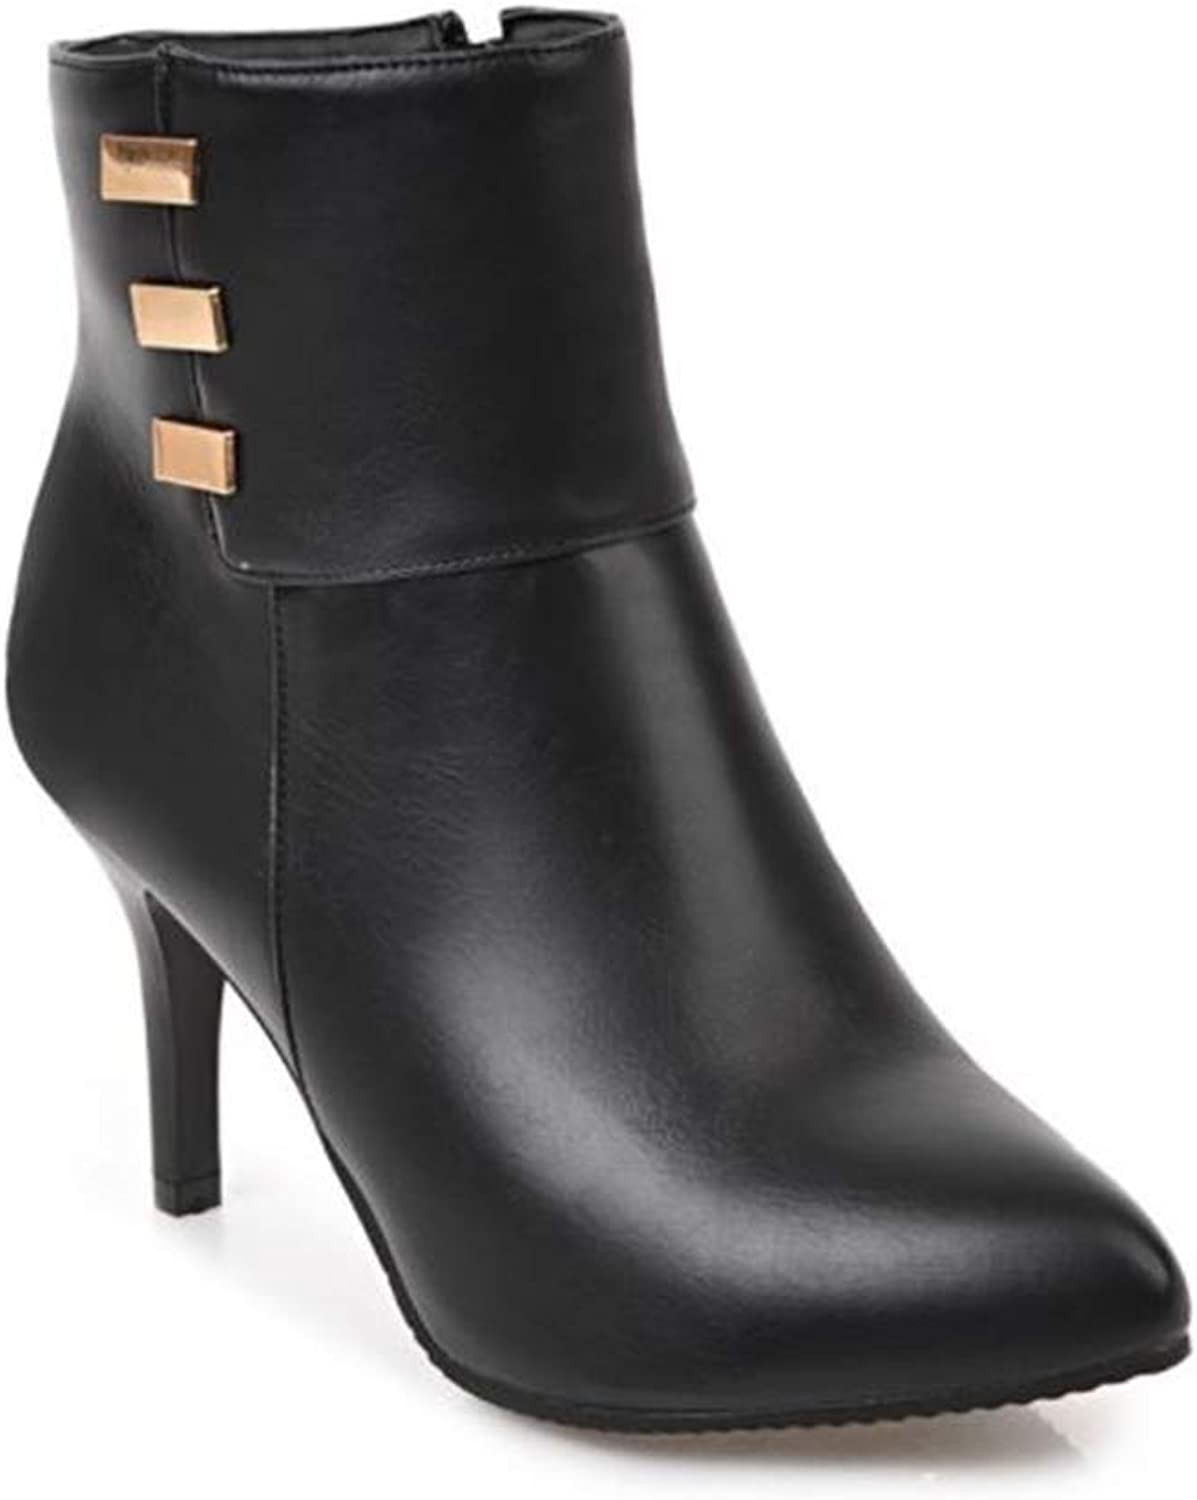 CHENSF Women's Pointed Toe Stiletto High Heel Ankle Bootie